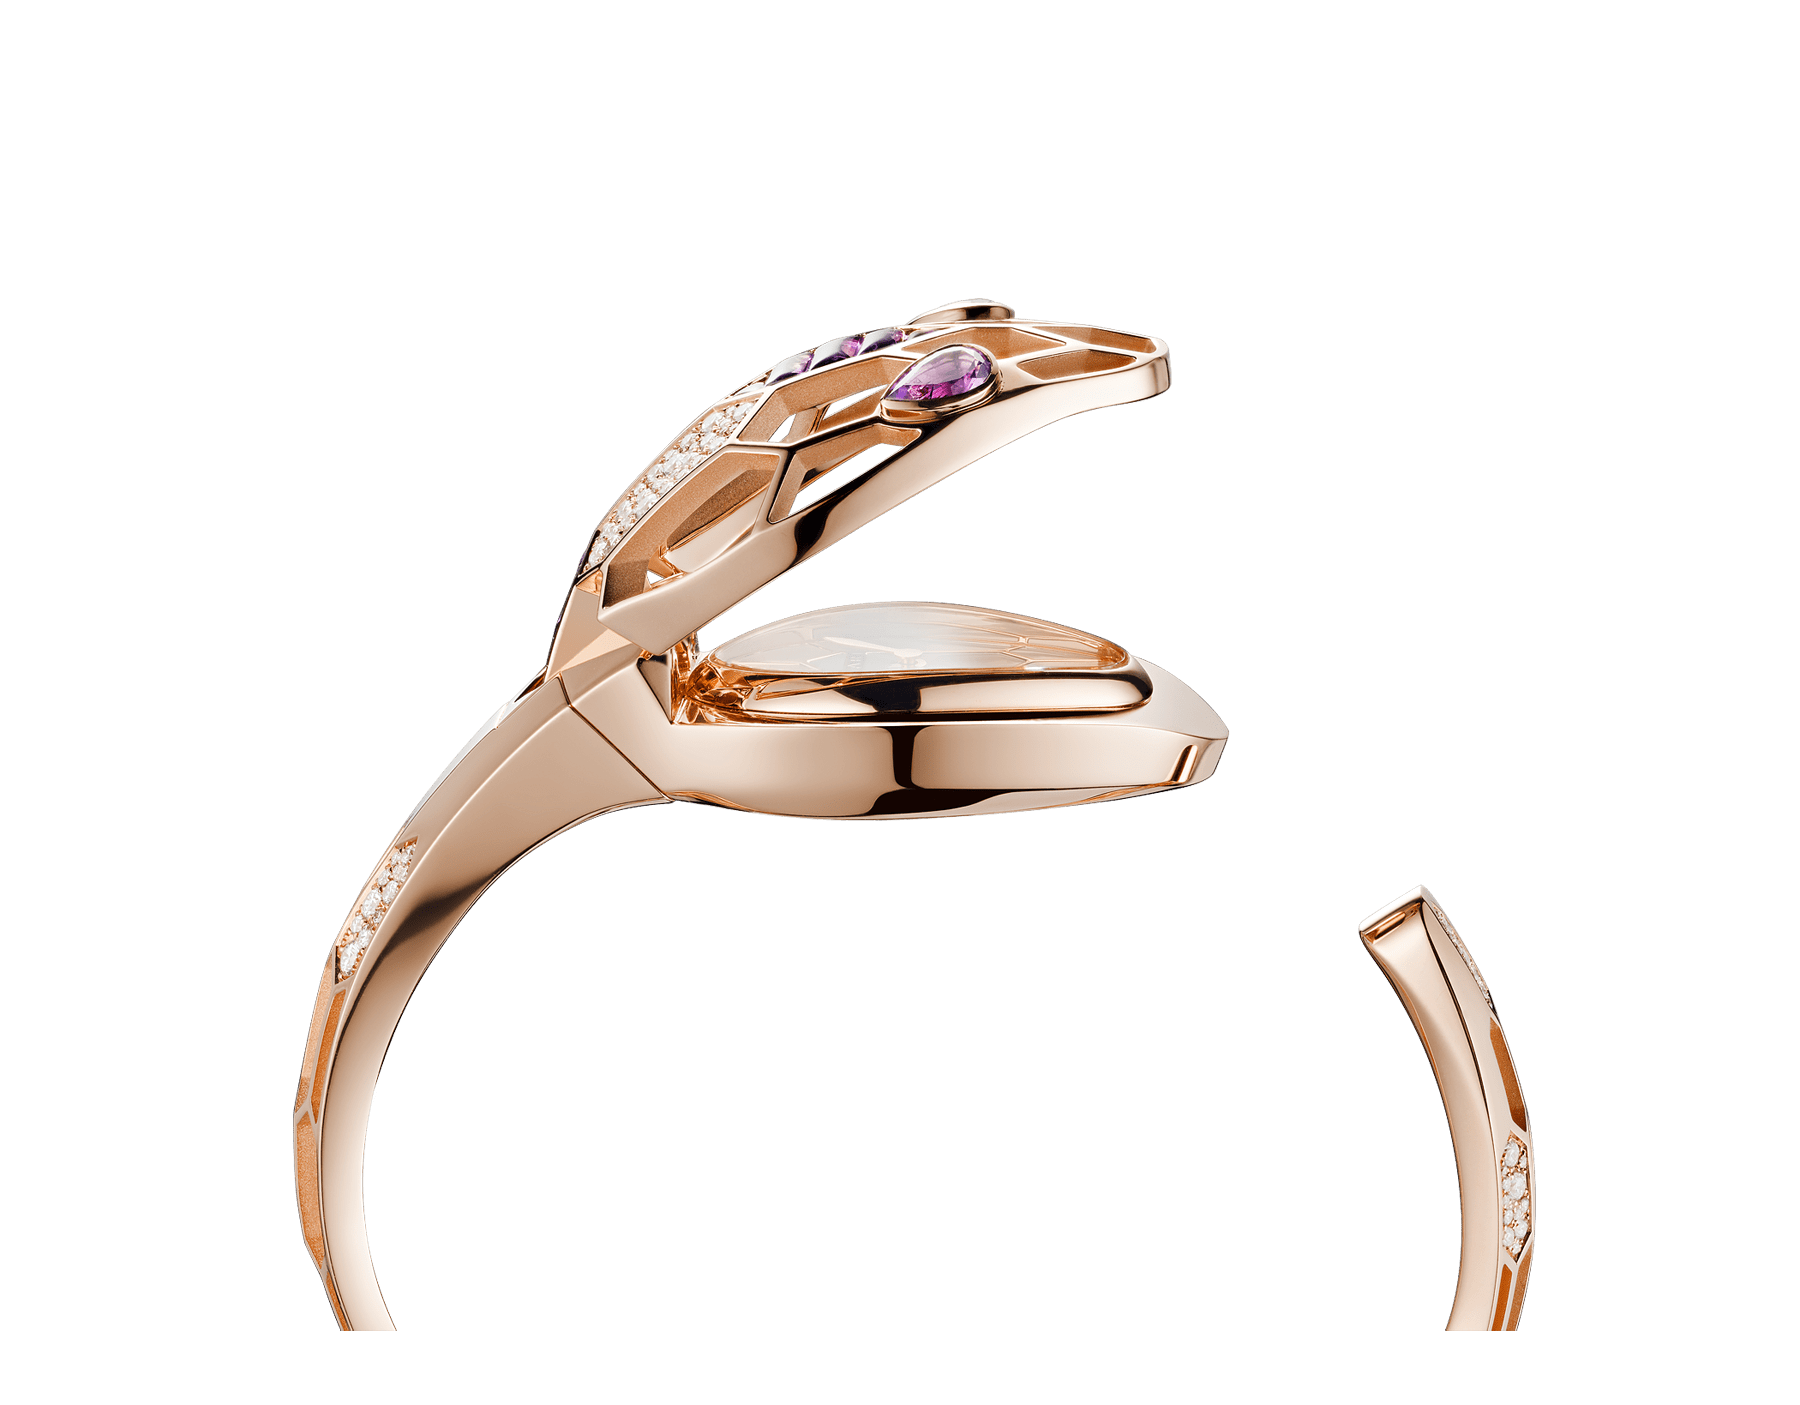 Serpenti Misteriosi Secret Watch in 18 kt rose gold case and bracelet both set with round brilliant-cut diamonds and baguette-cut amethysts, mother-of-pearl dial and pear shaped amethyst eyes. Small size 103054 image 3